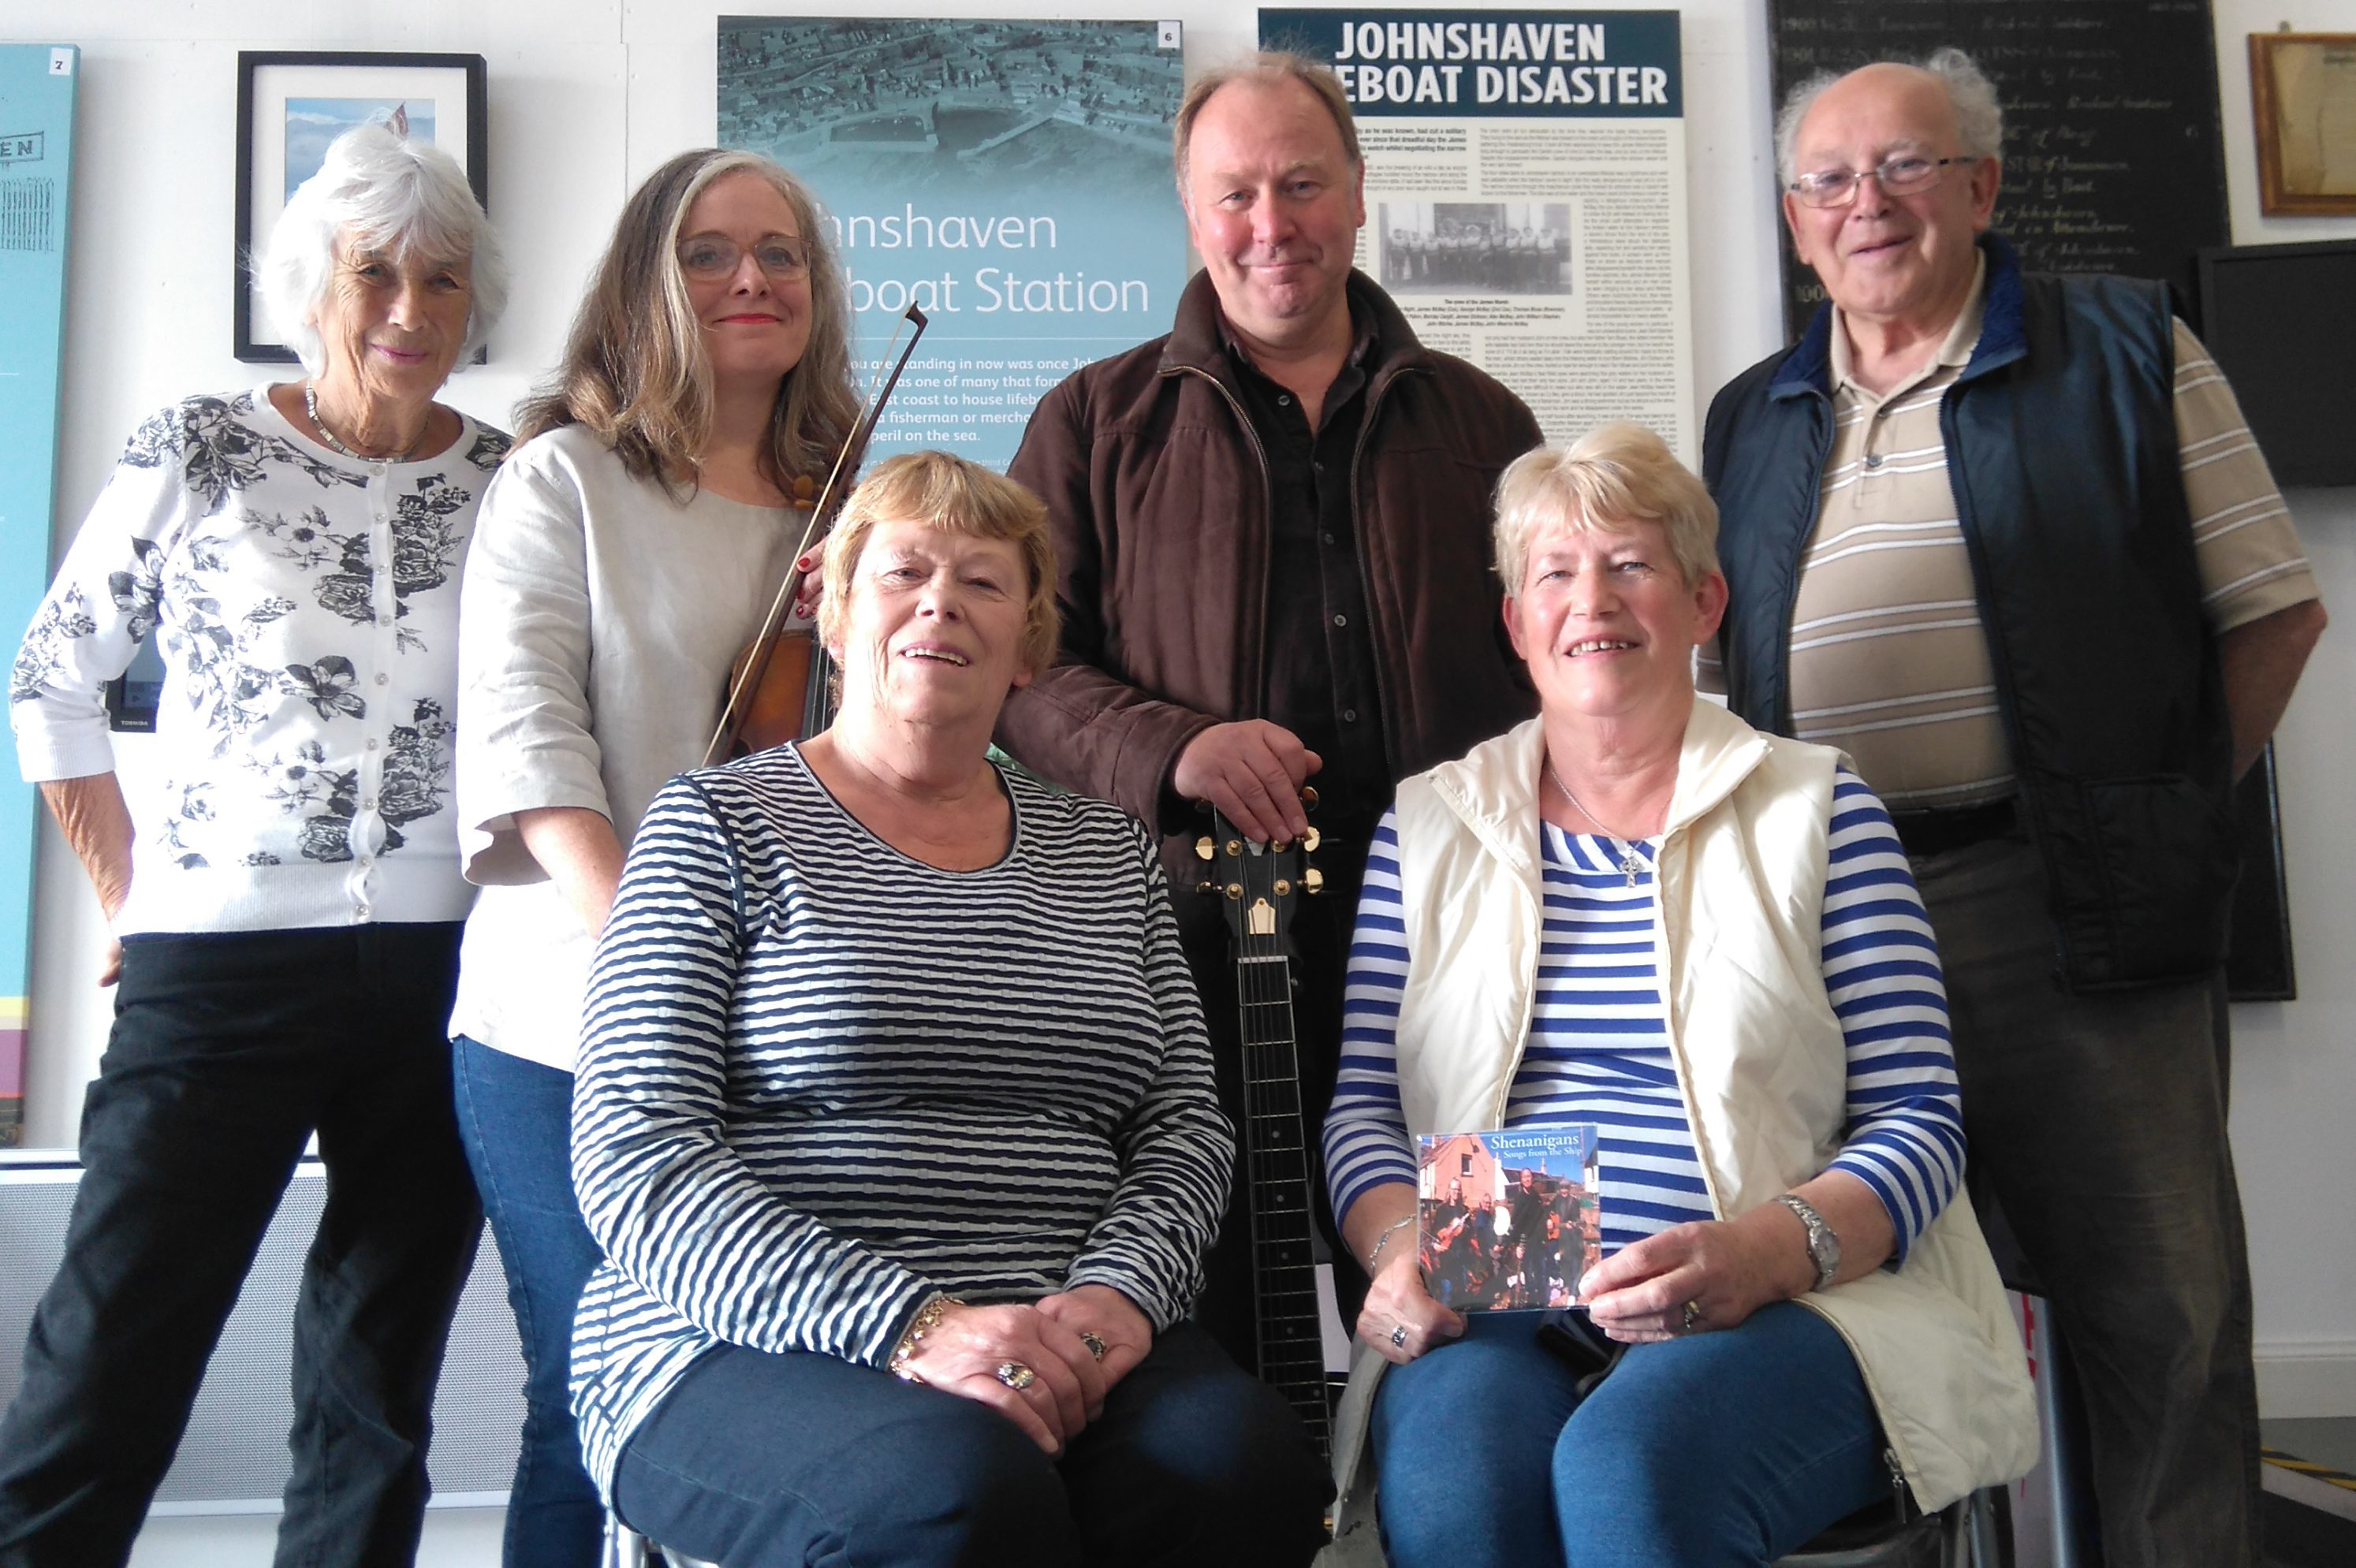 Members of the Johnshaven museum with Shenanigans and descendants of the crew.